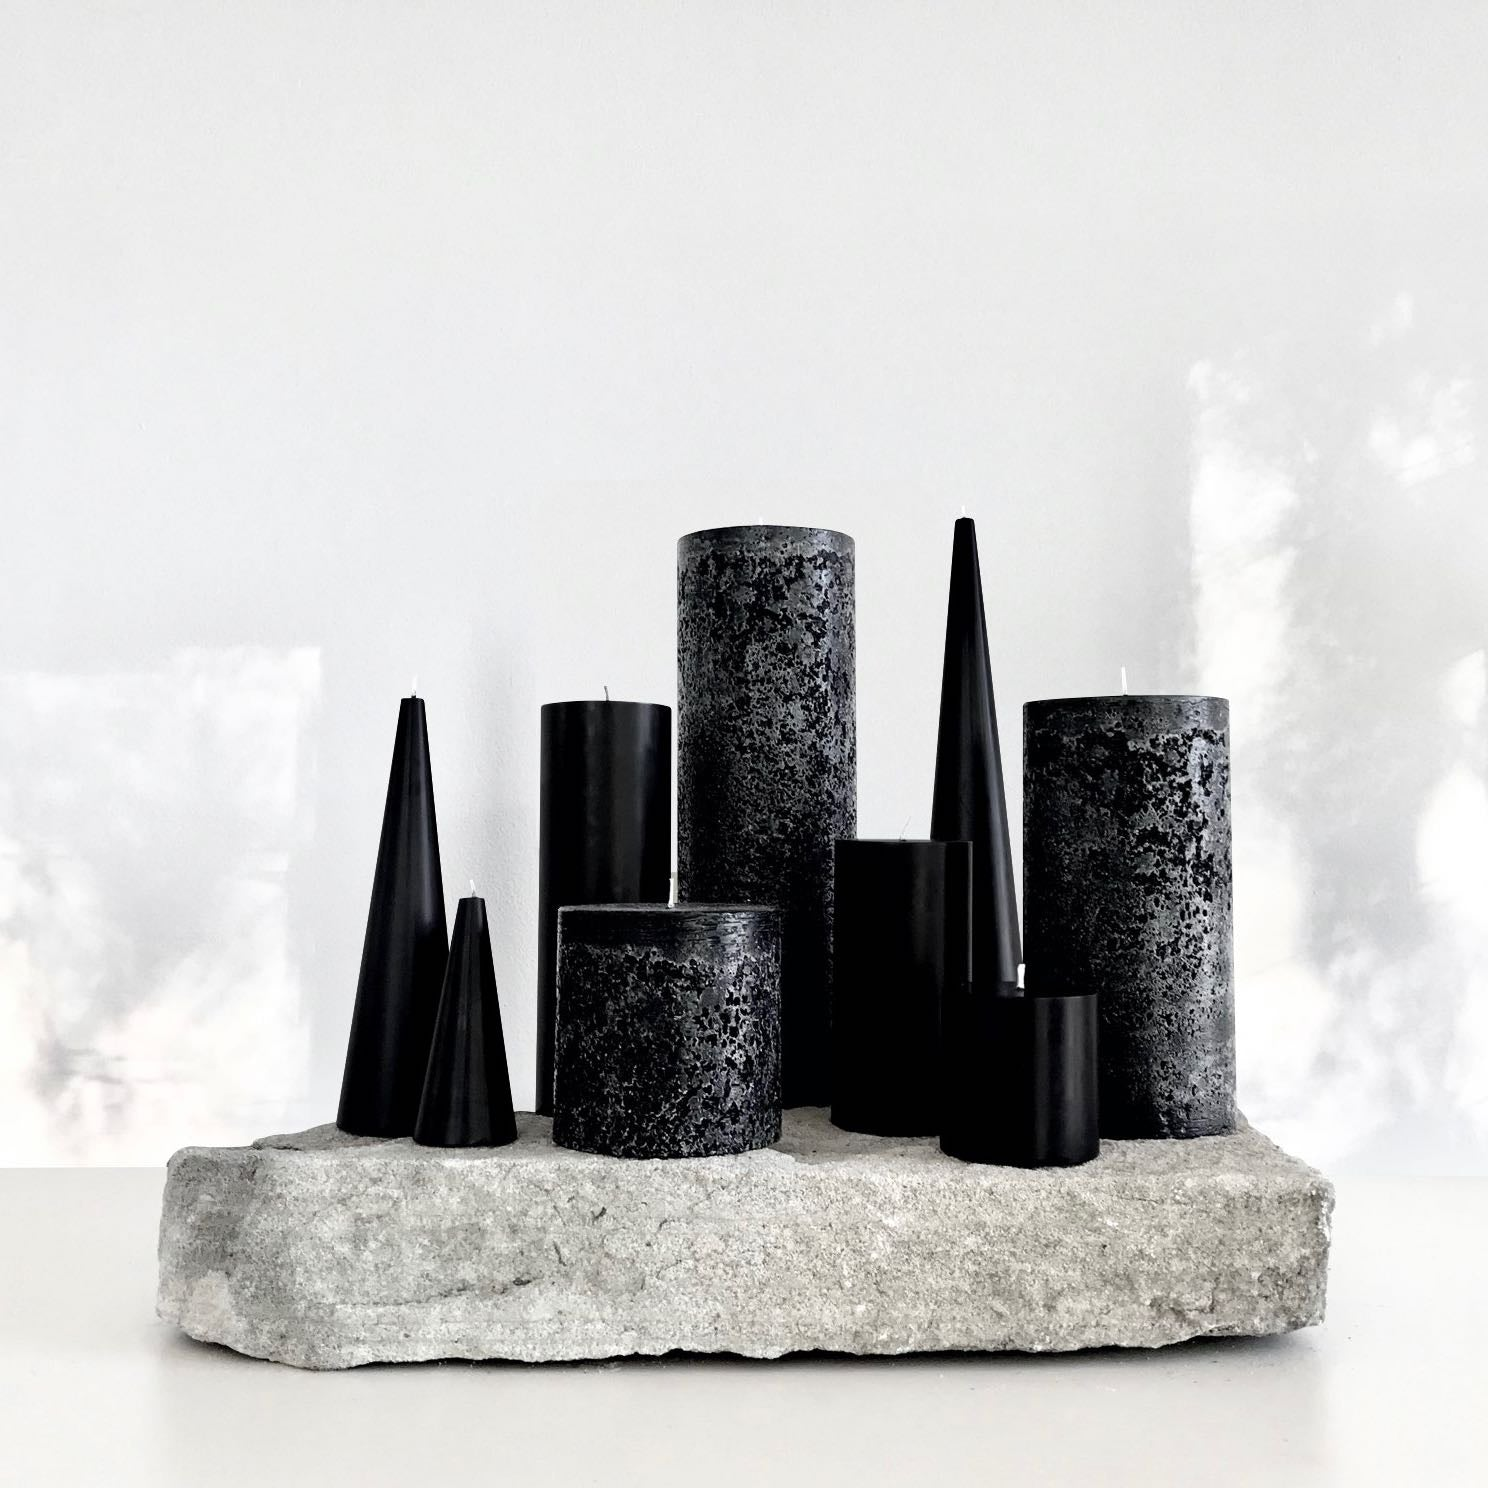 Black candle bundle